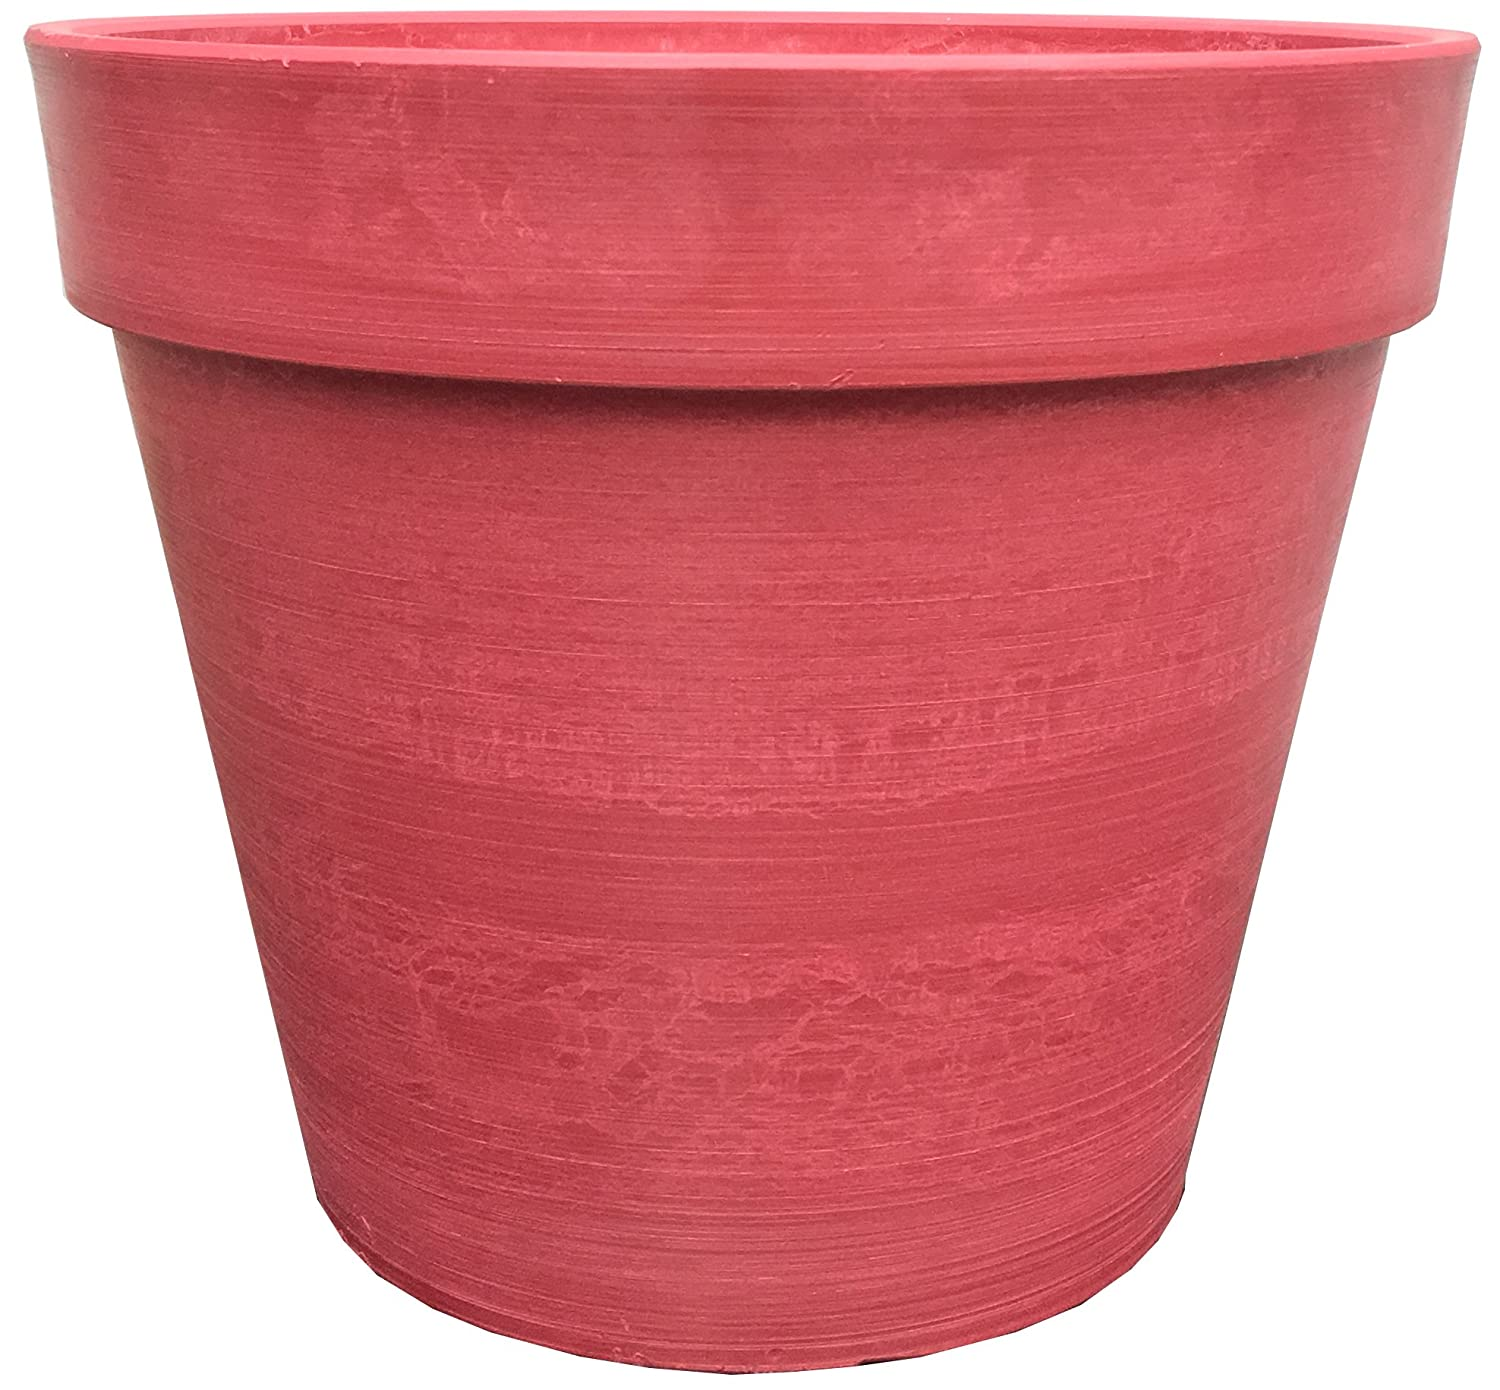 Spigo Contemporary UV-Protected Resin Flower Pot, 14 Inches, Red